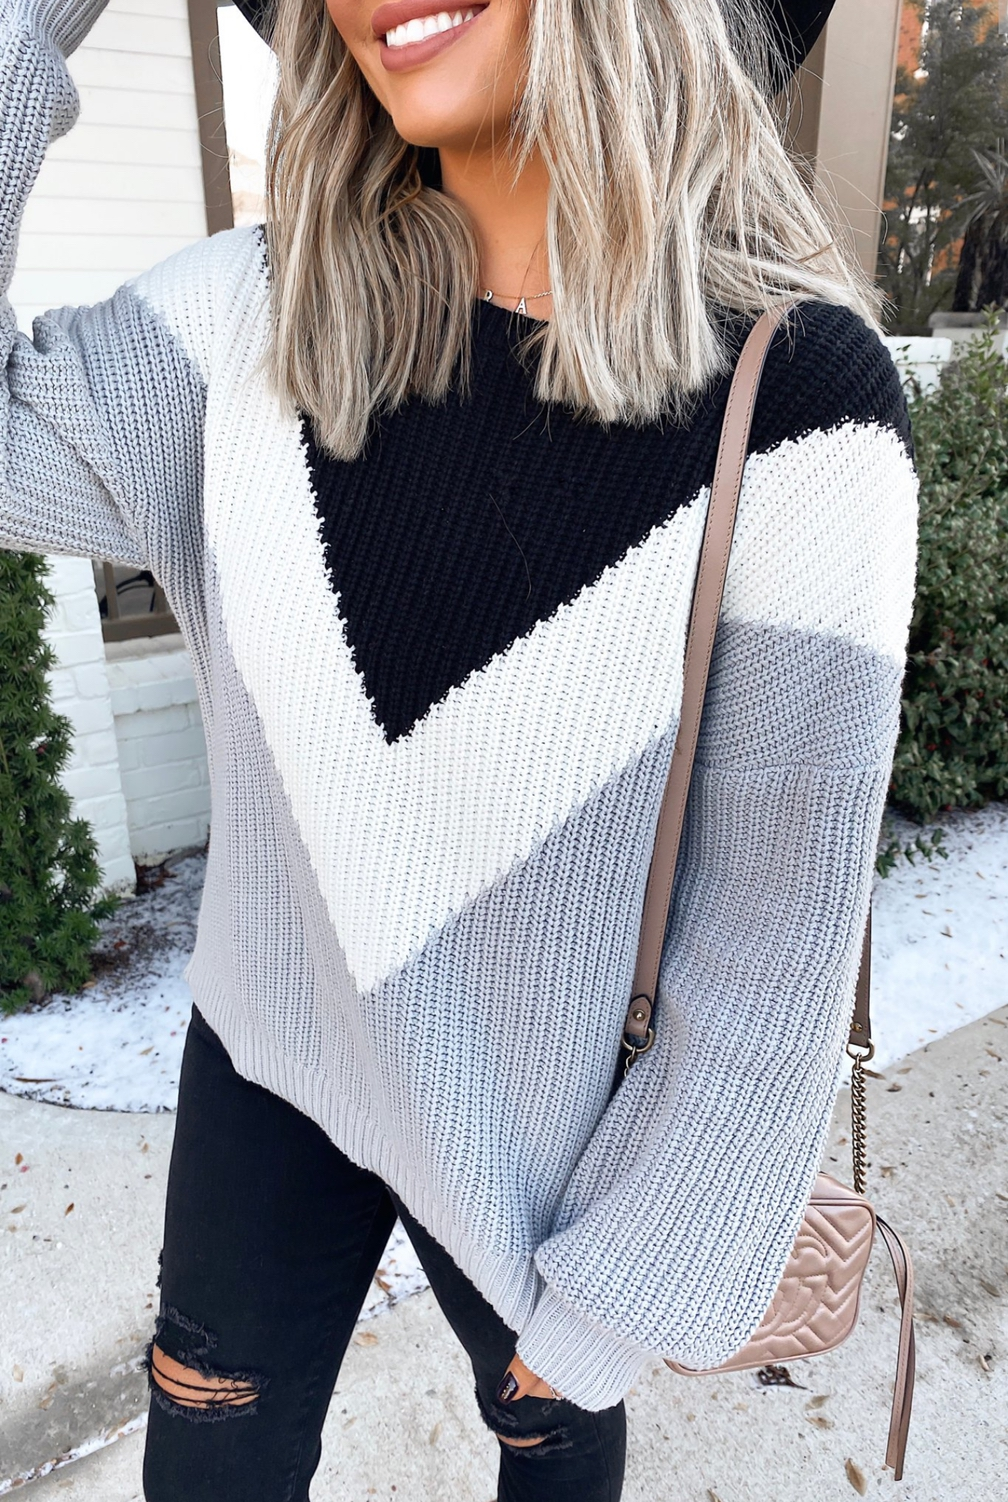 Grey sweater outfits for fall